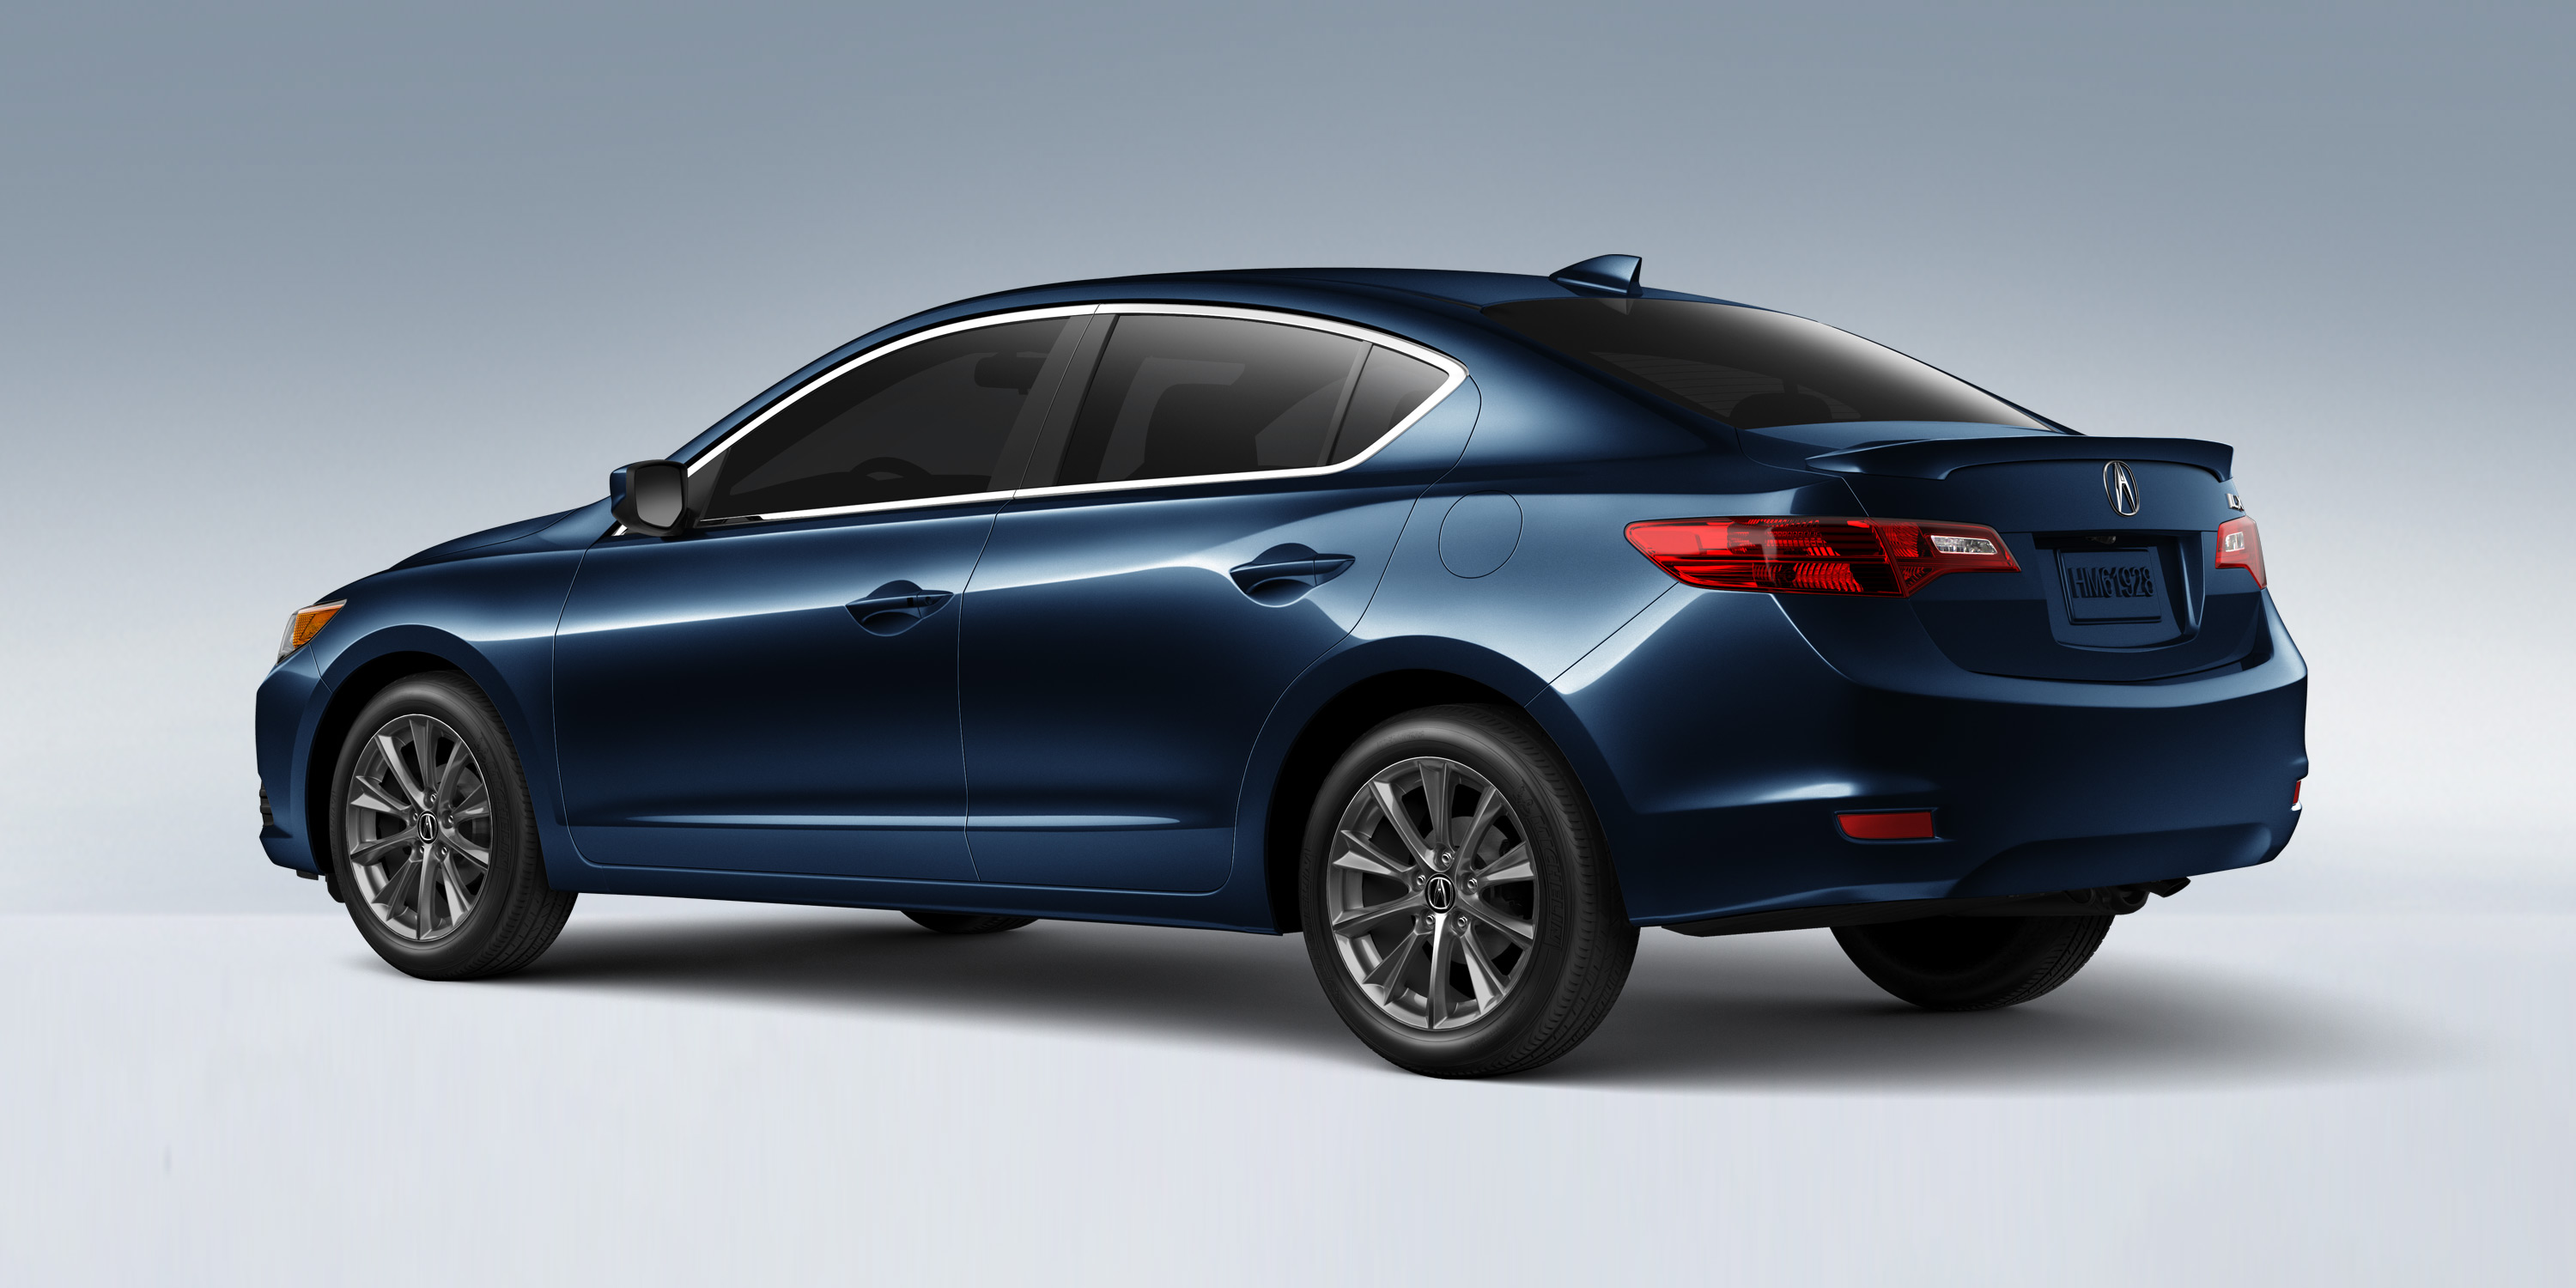 2014 Acura ILX Now On Sale